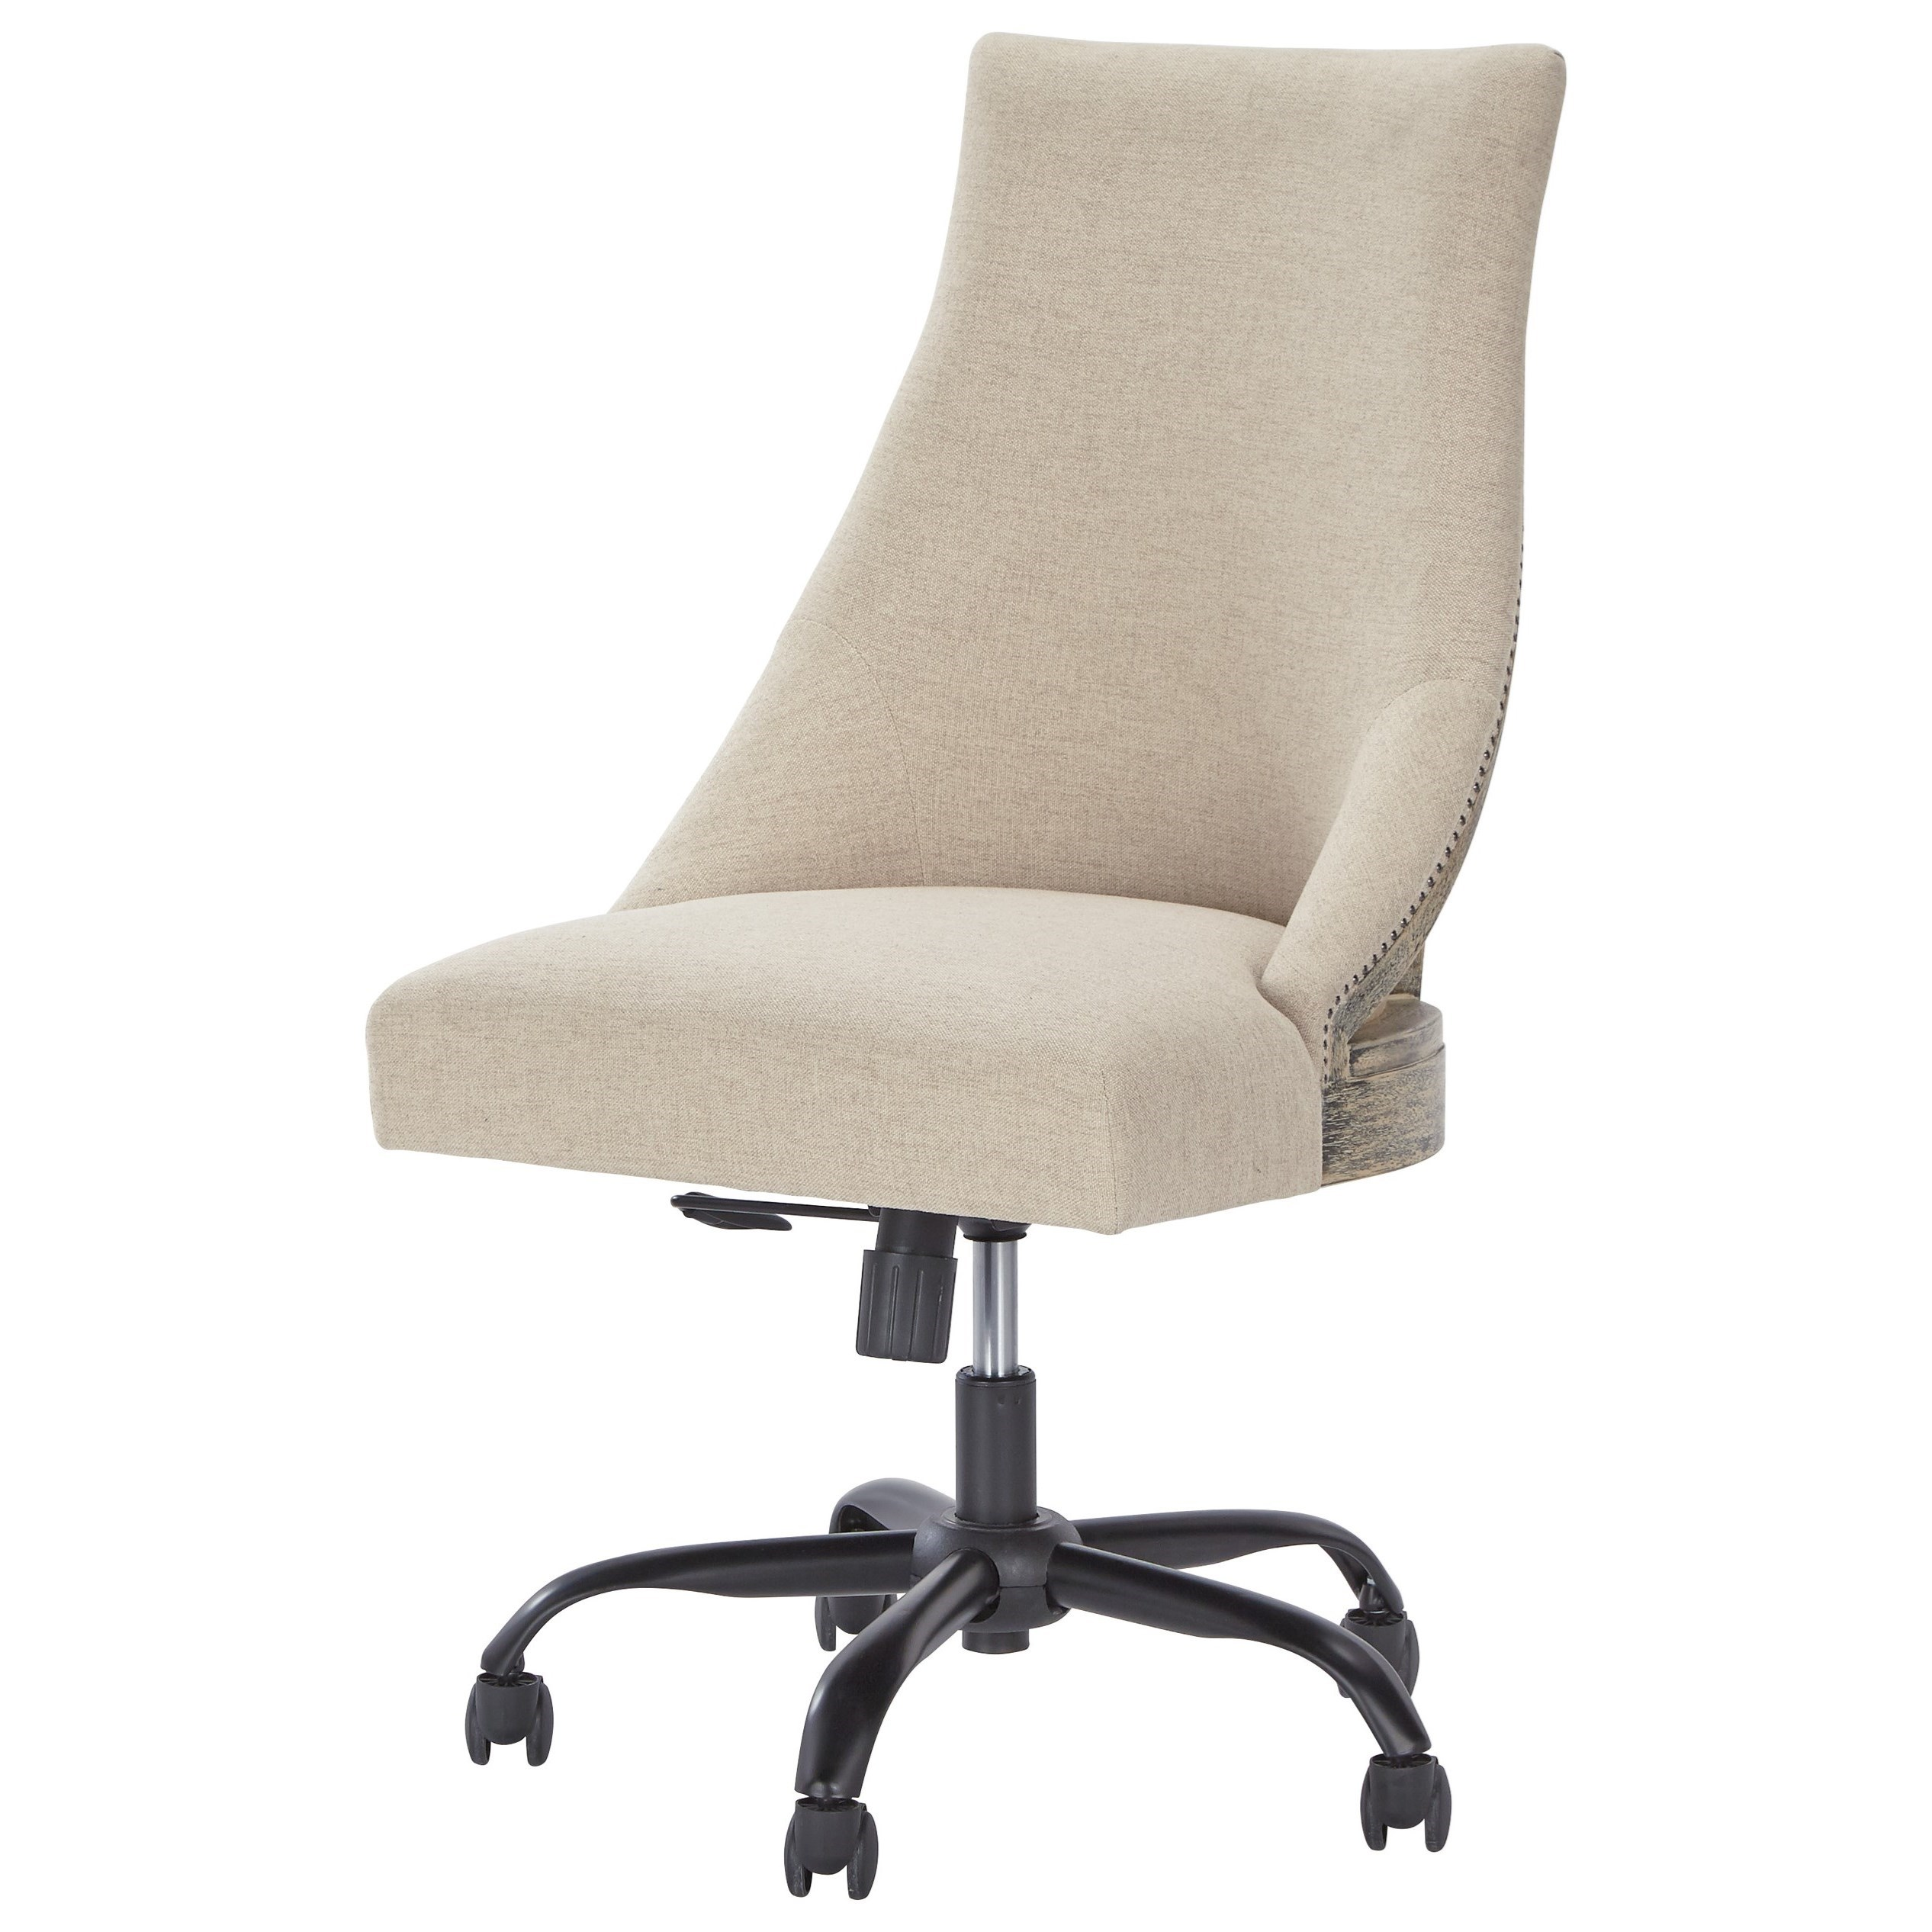 Office Chair Program Desk Chair by Signature Design by Ashley at HomeWorld Furniture